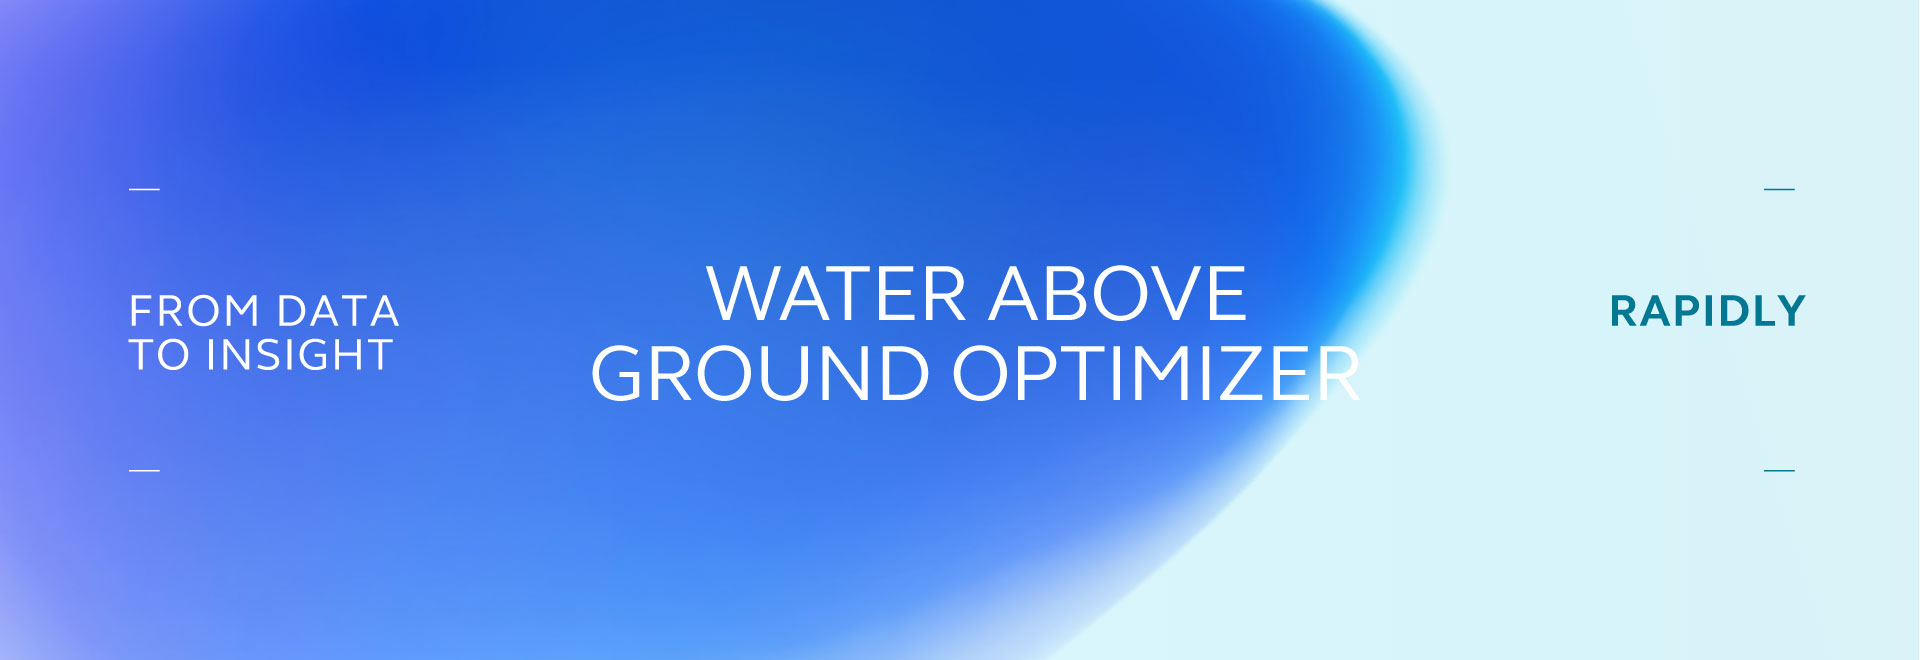 Water Above Ground Optimizer